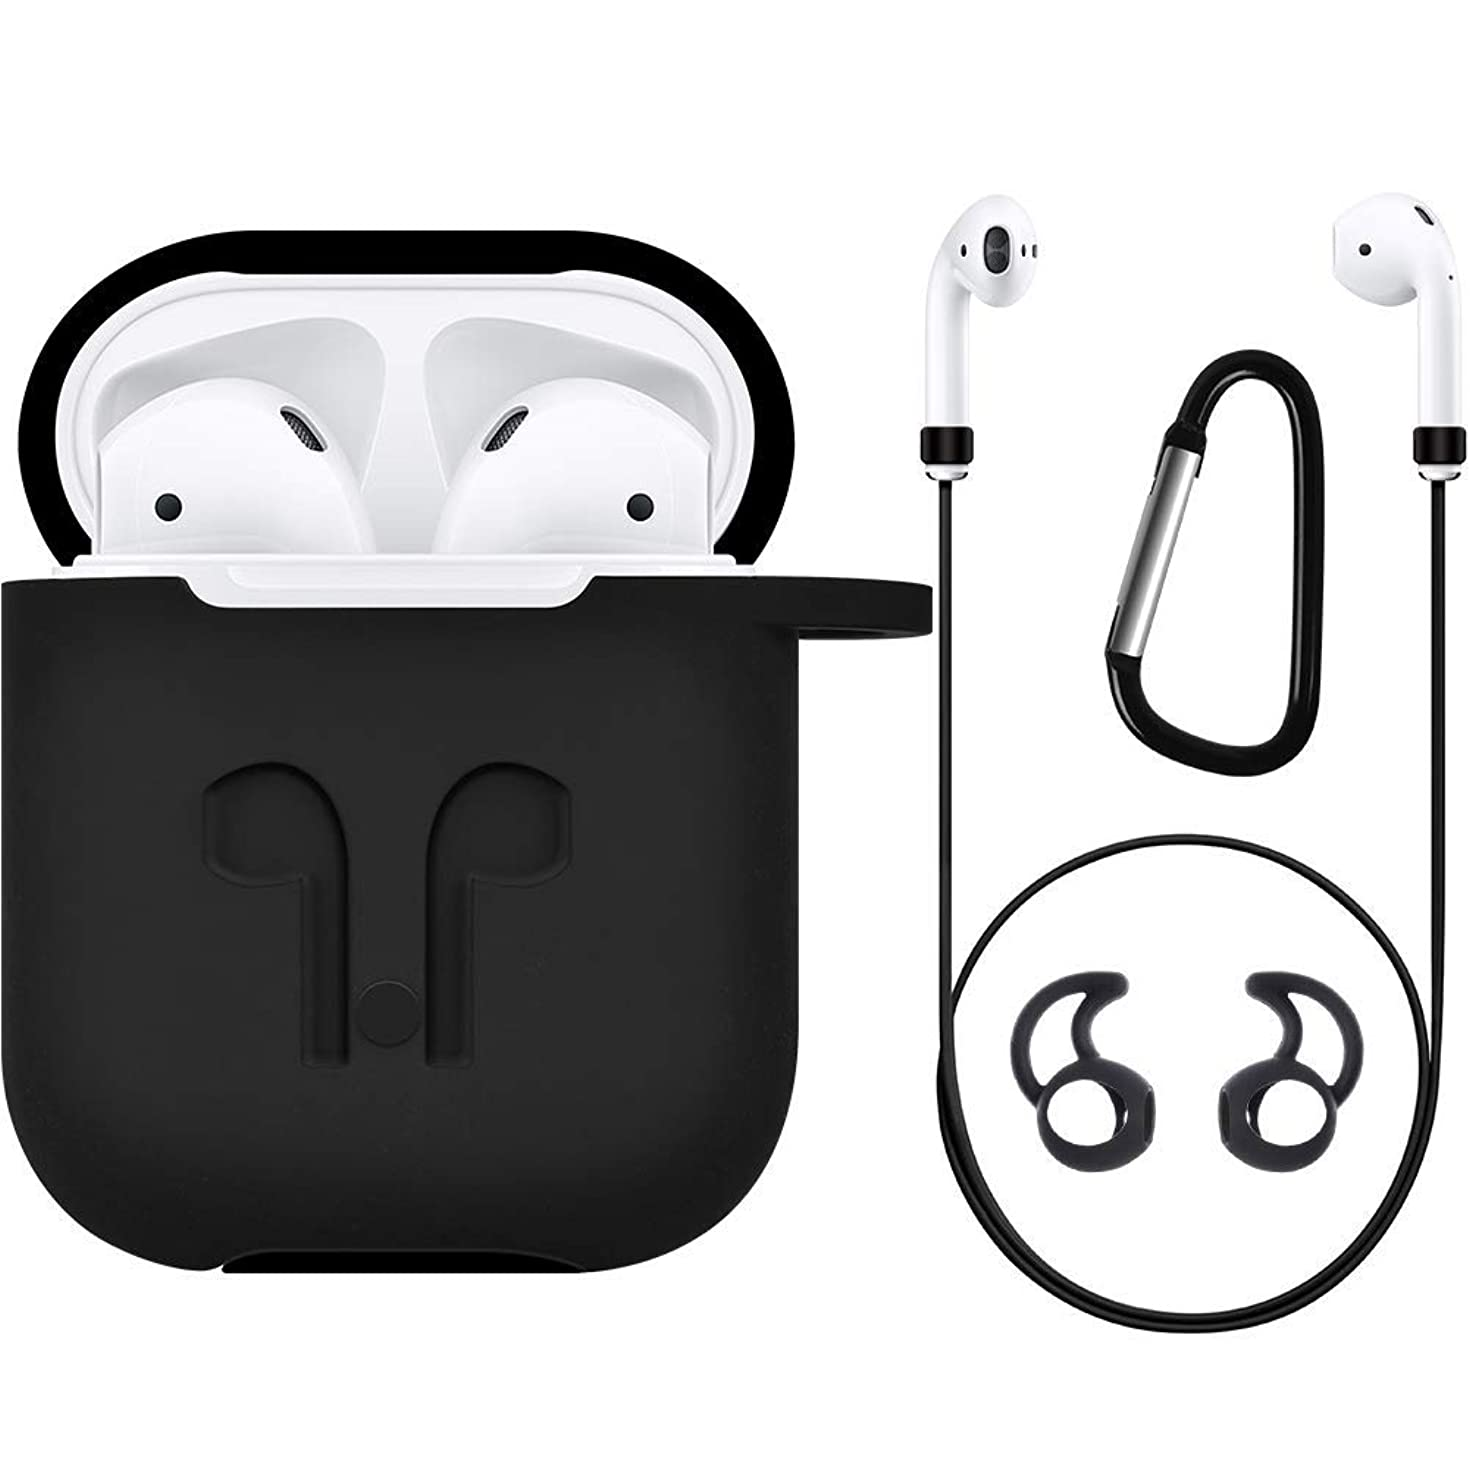 AirPods Case Airpods Accessories Kits Protective Silicone Cover and Skin for Apple Airpods Charging Case with Airpods Ear Hook Grips/Airpods Staps/Airpods Clips/Skin/Tips/Grips (Black)